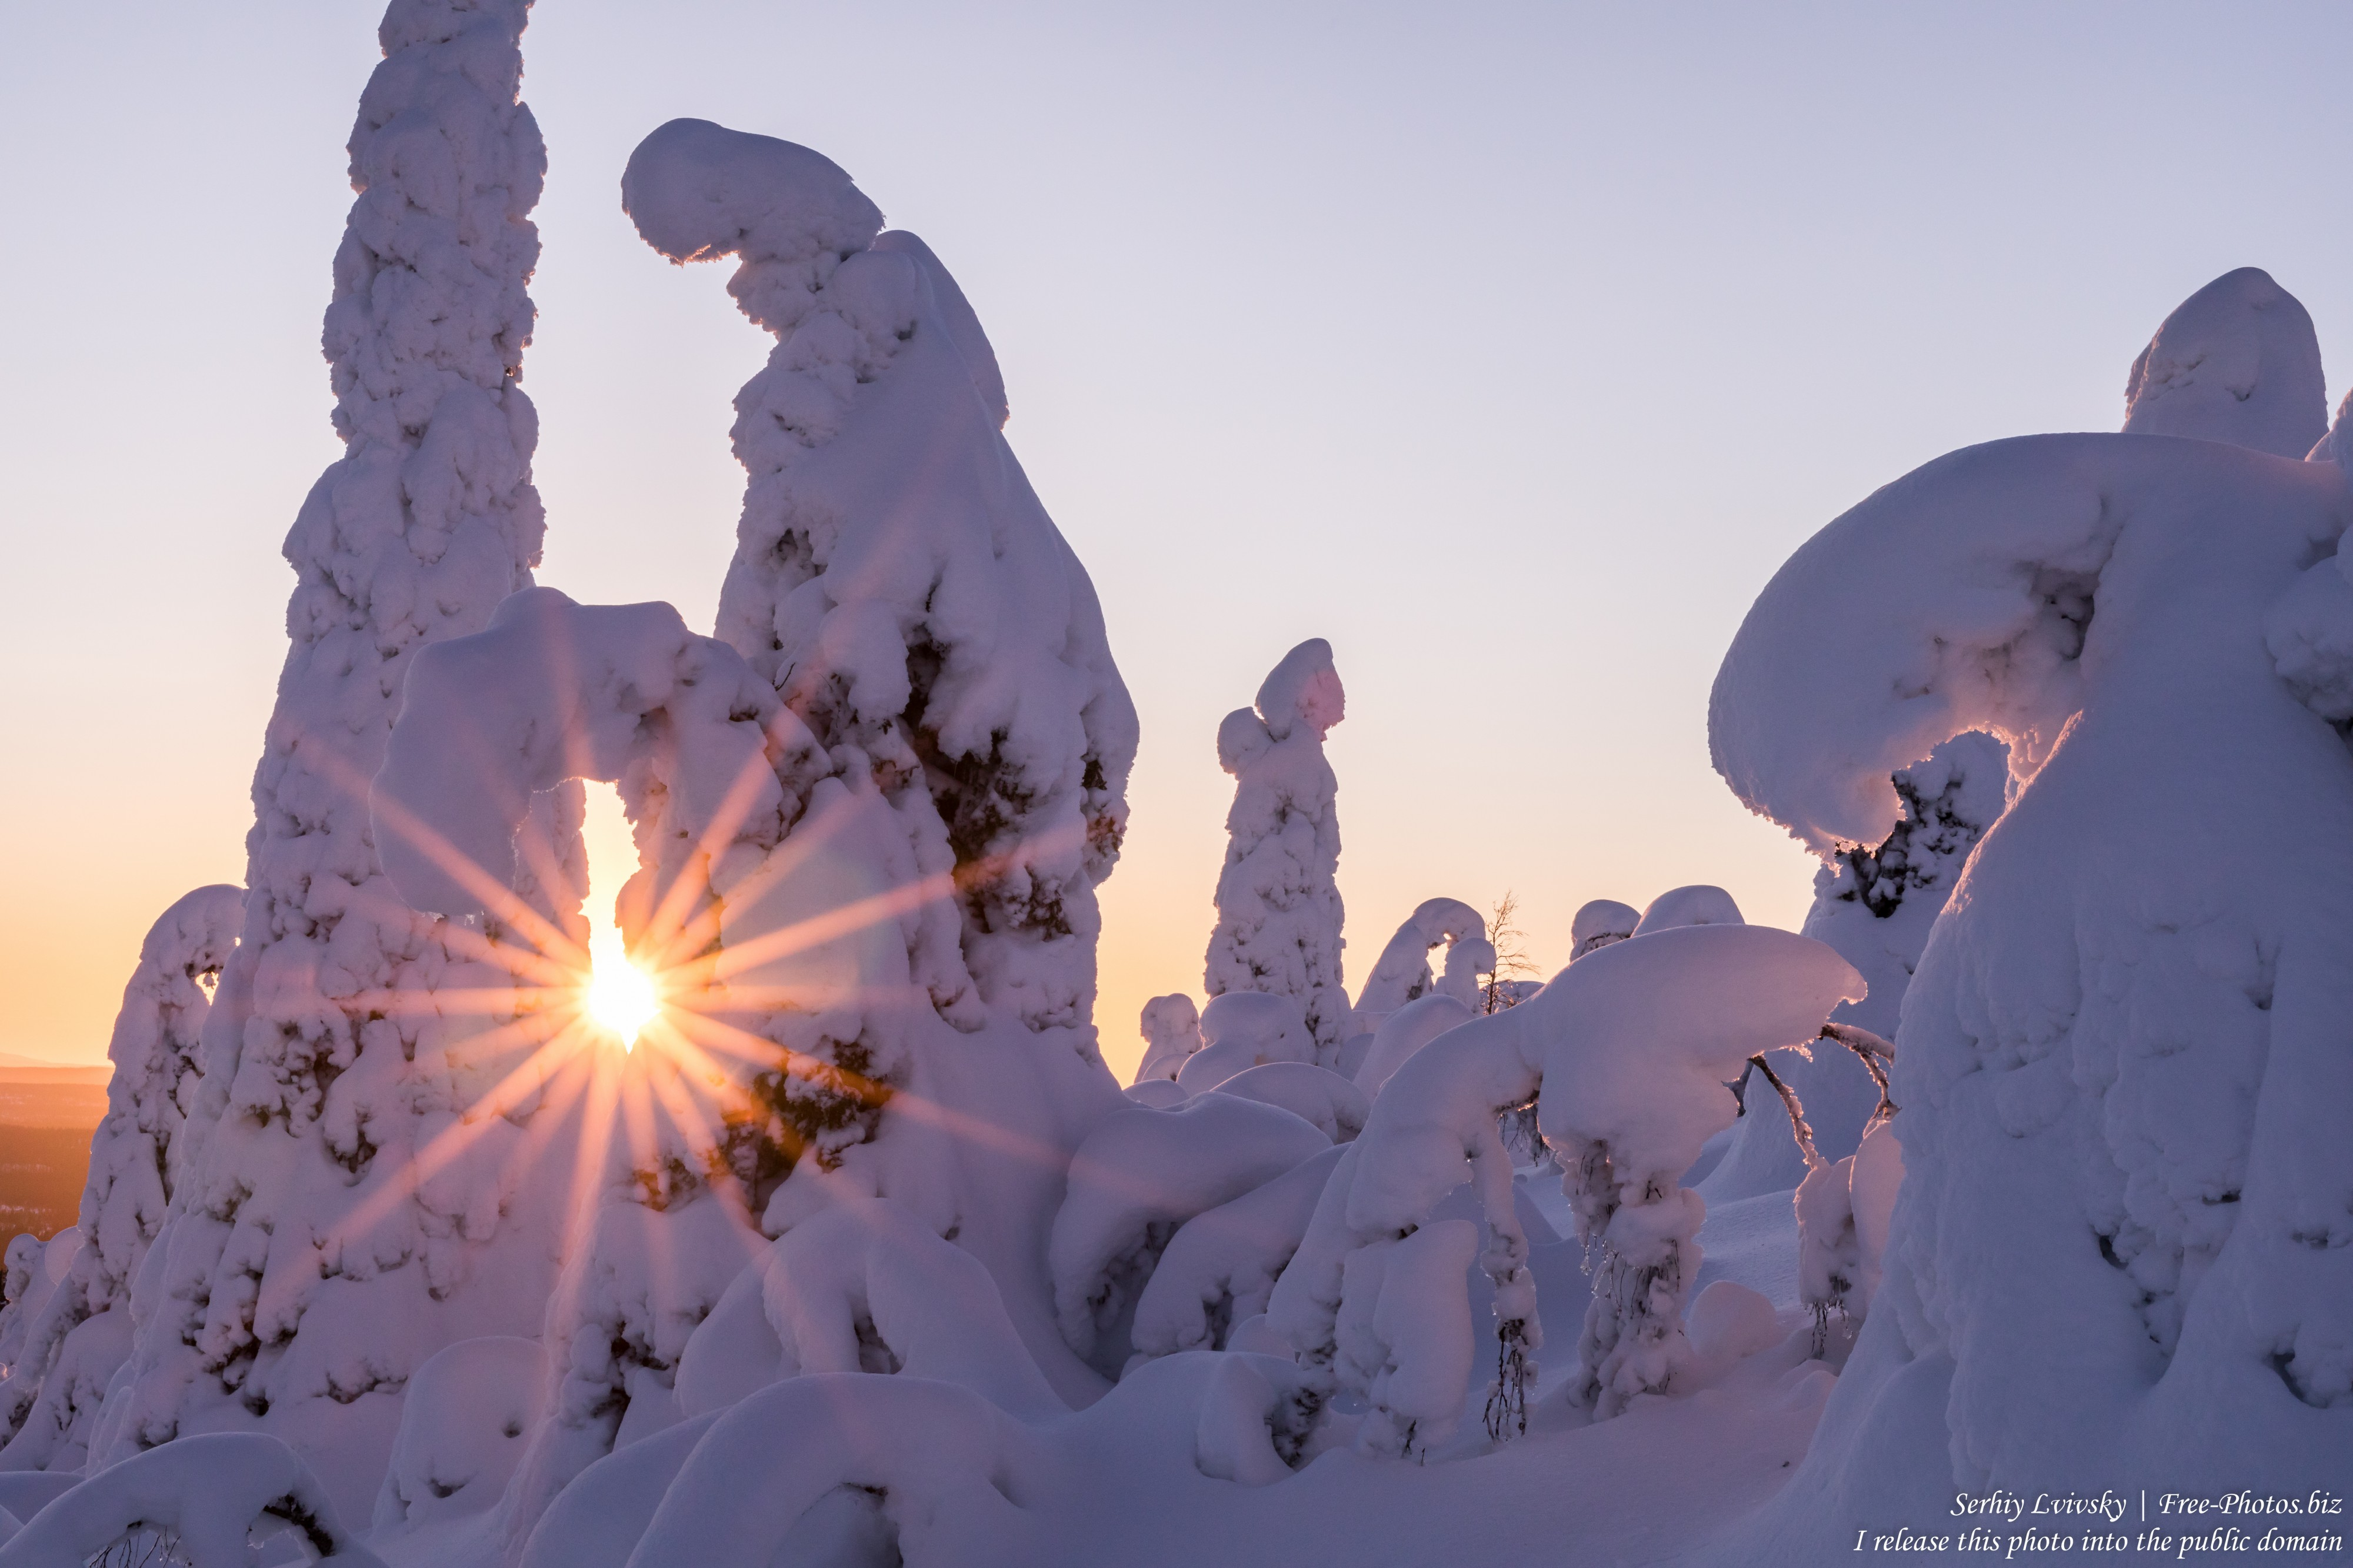 Valtavaara, Finland, photographed in January 2020 by Serhiy Lvivsky, picture 32